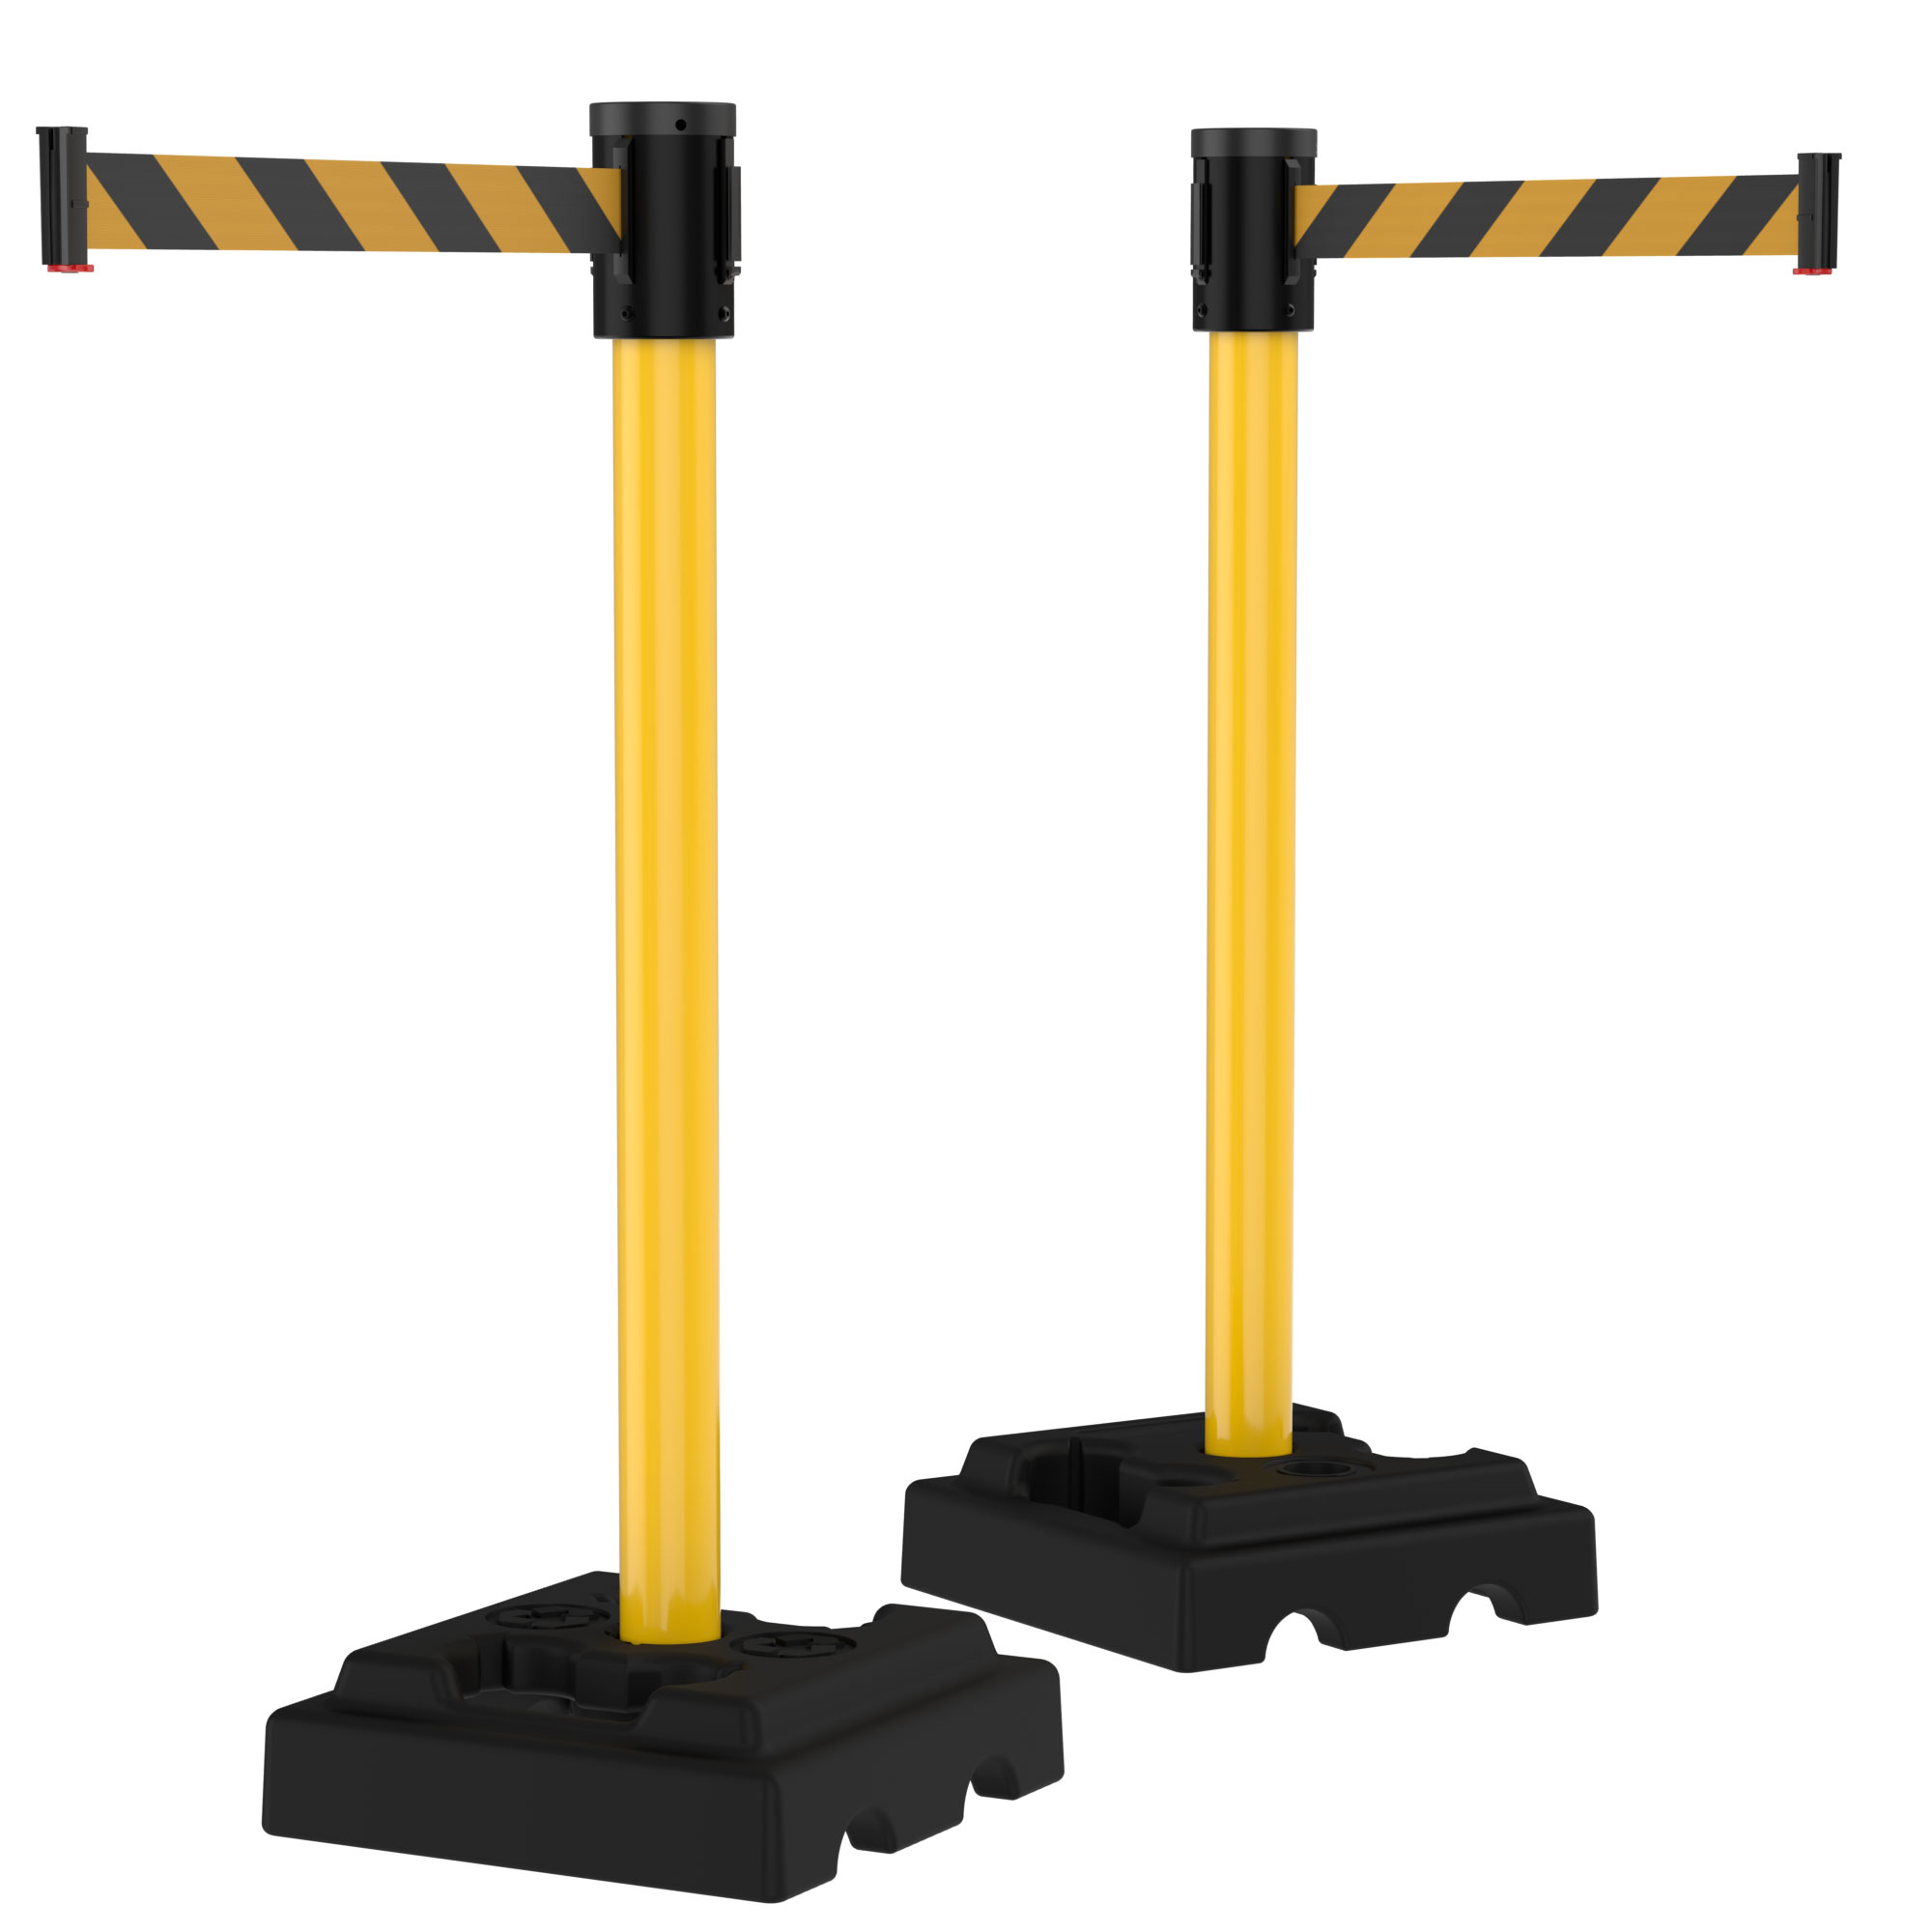 15' Retractable Belt Outdoor Utility Crowd Control Safety Stanchions